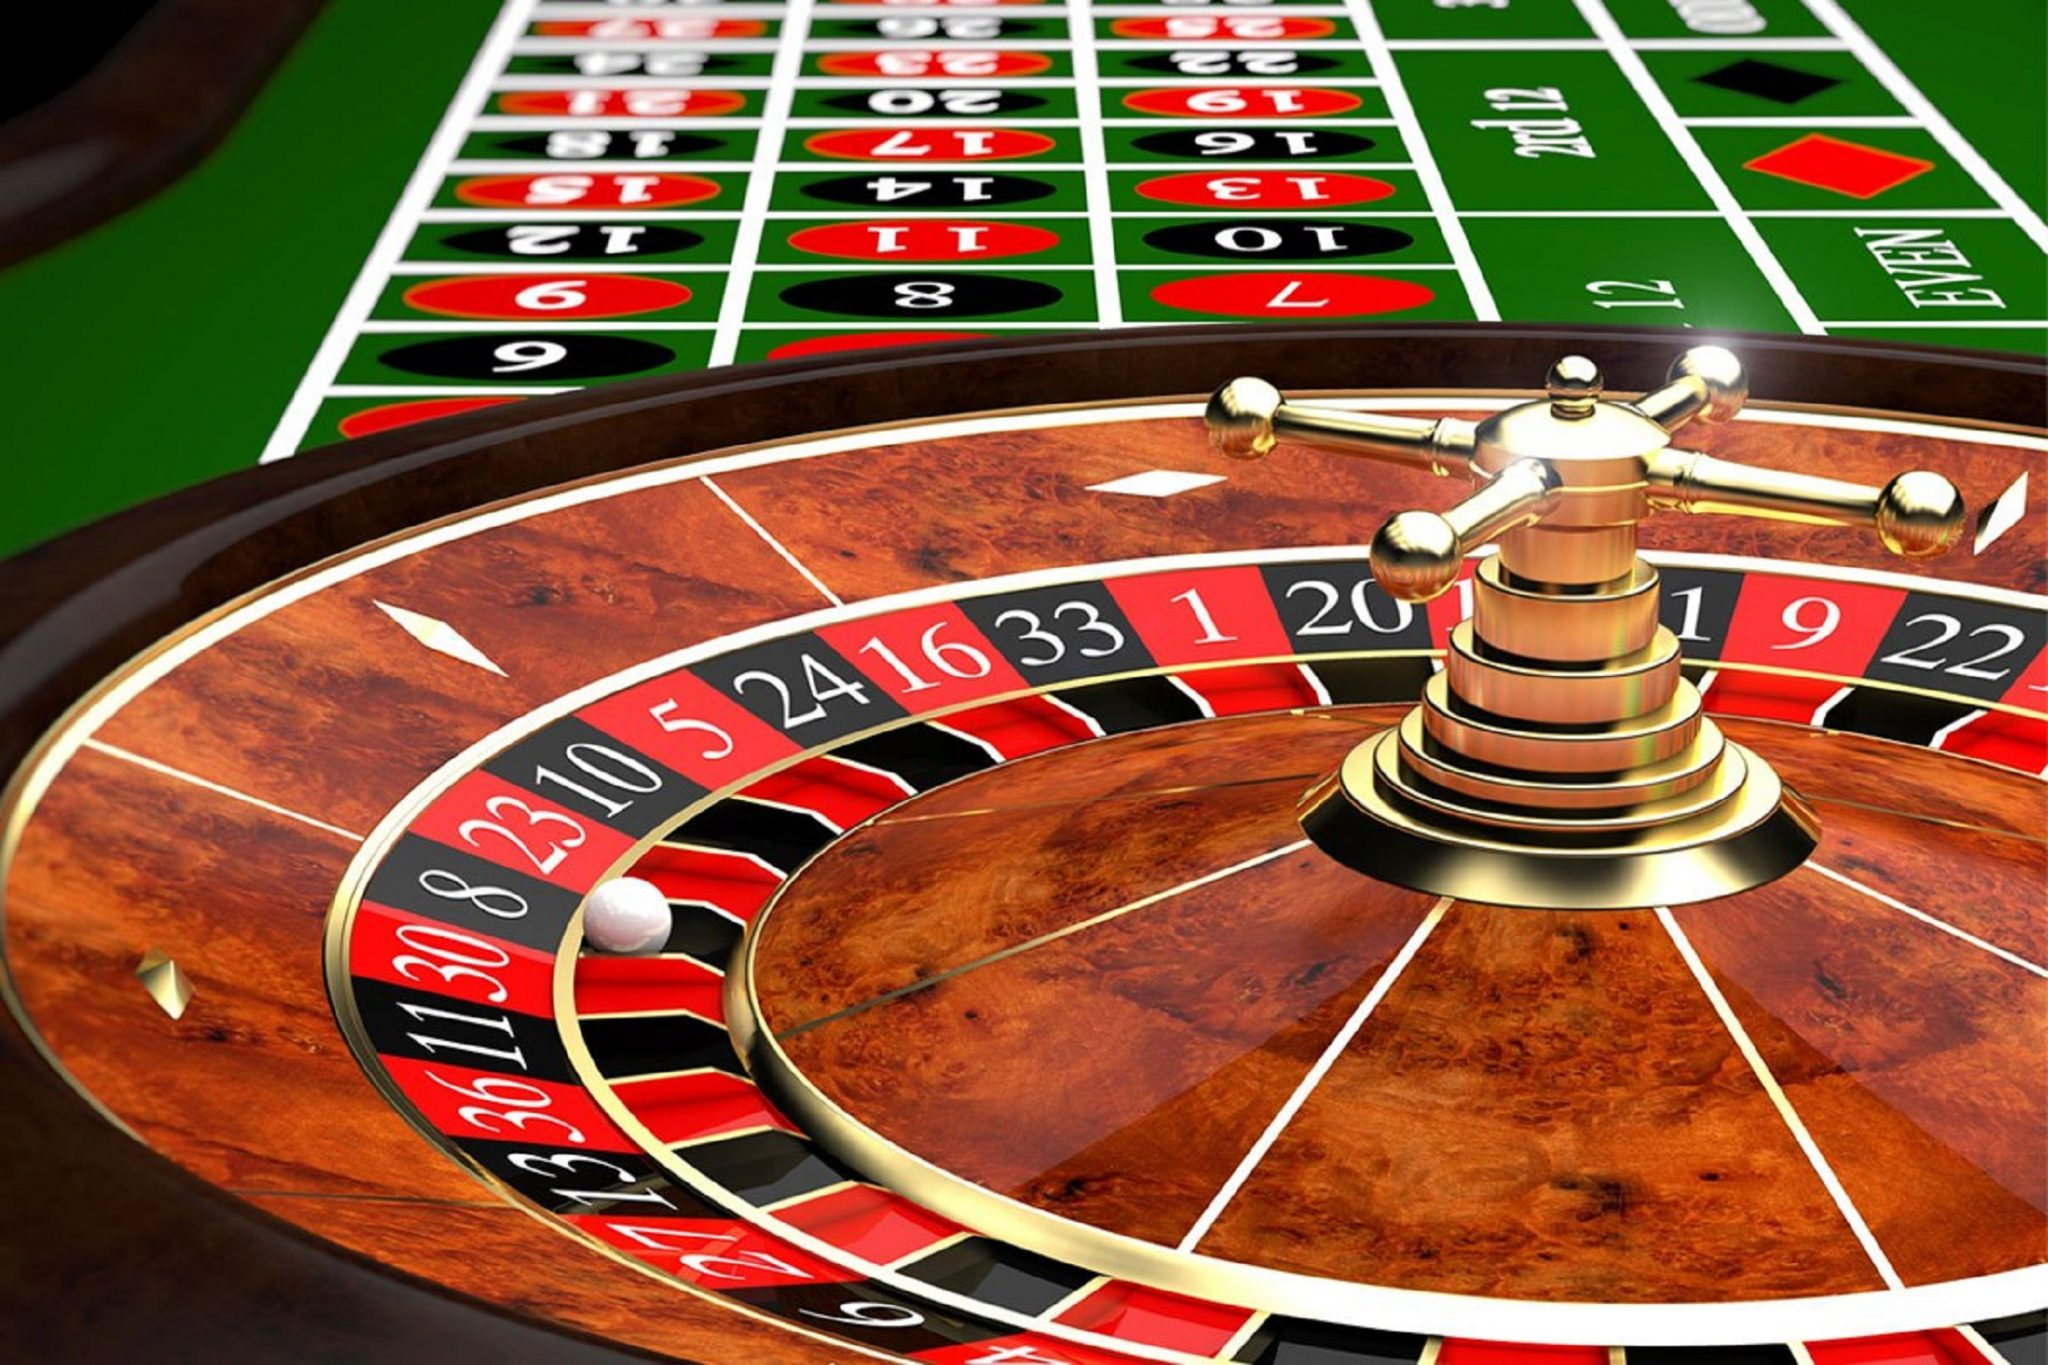 The stakes of roulette